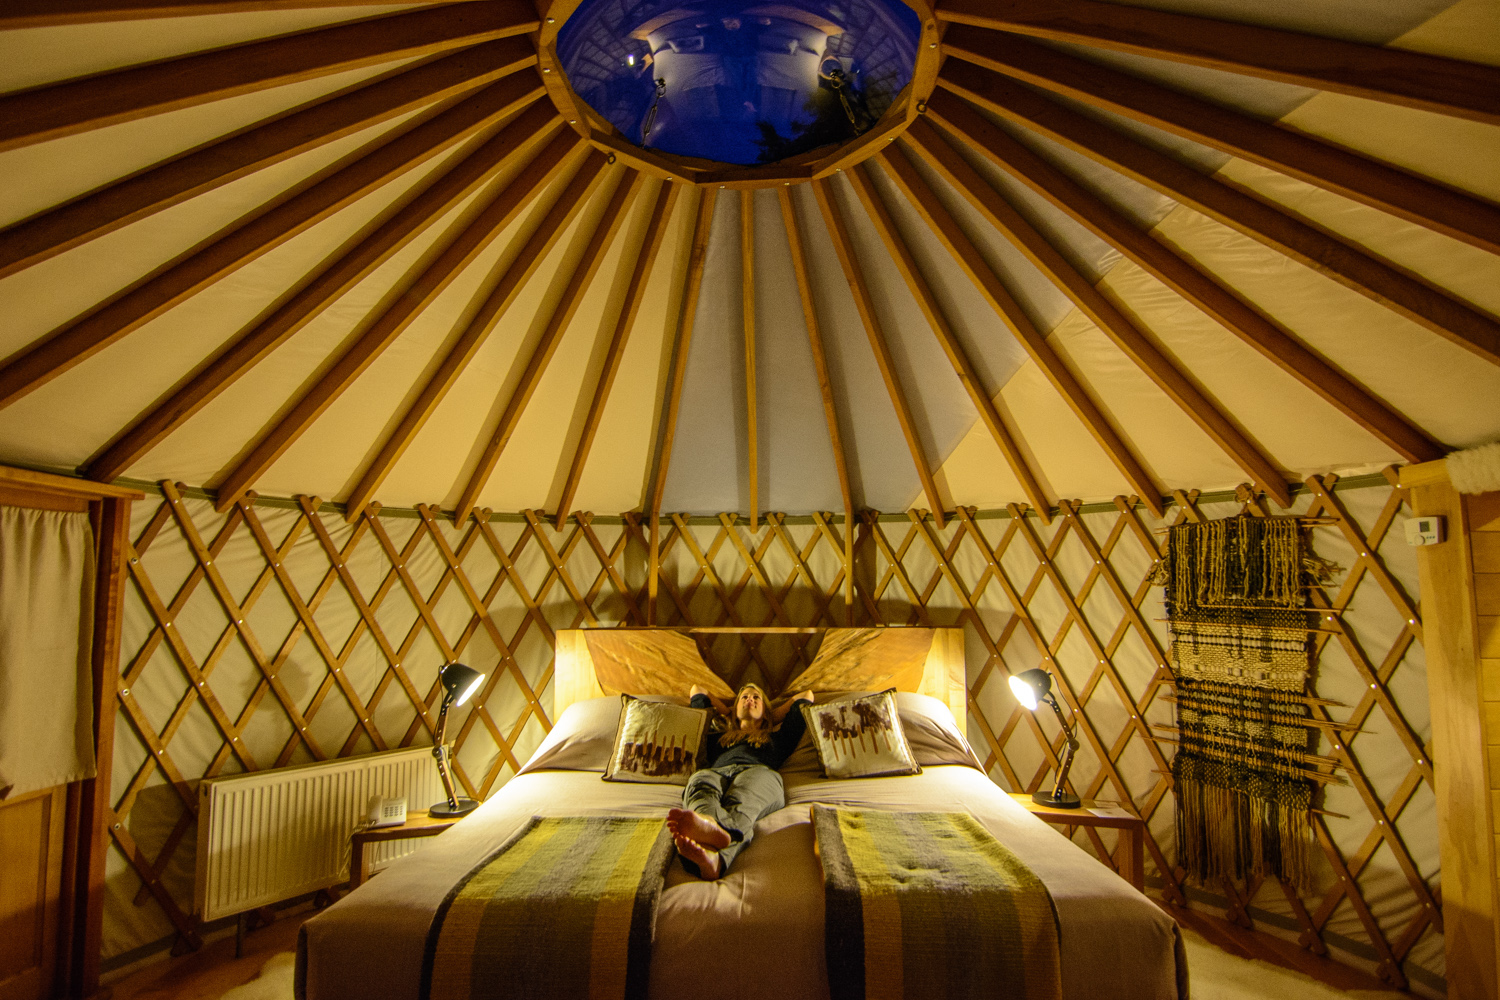 unusual hotel yurt in torres del paine, chile patagonia